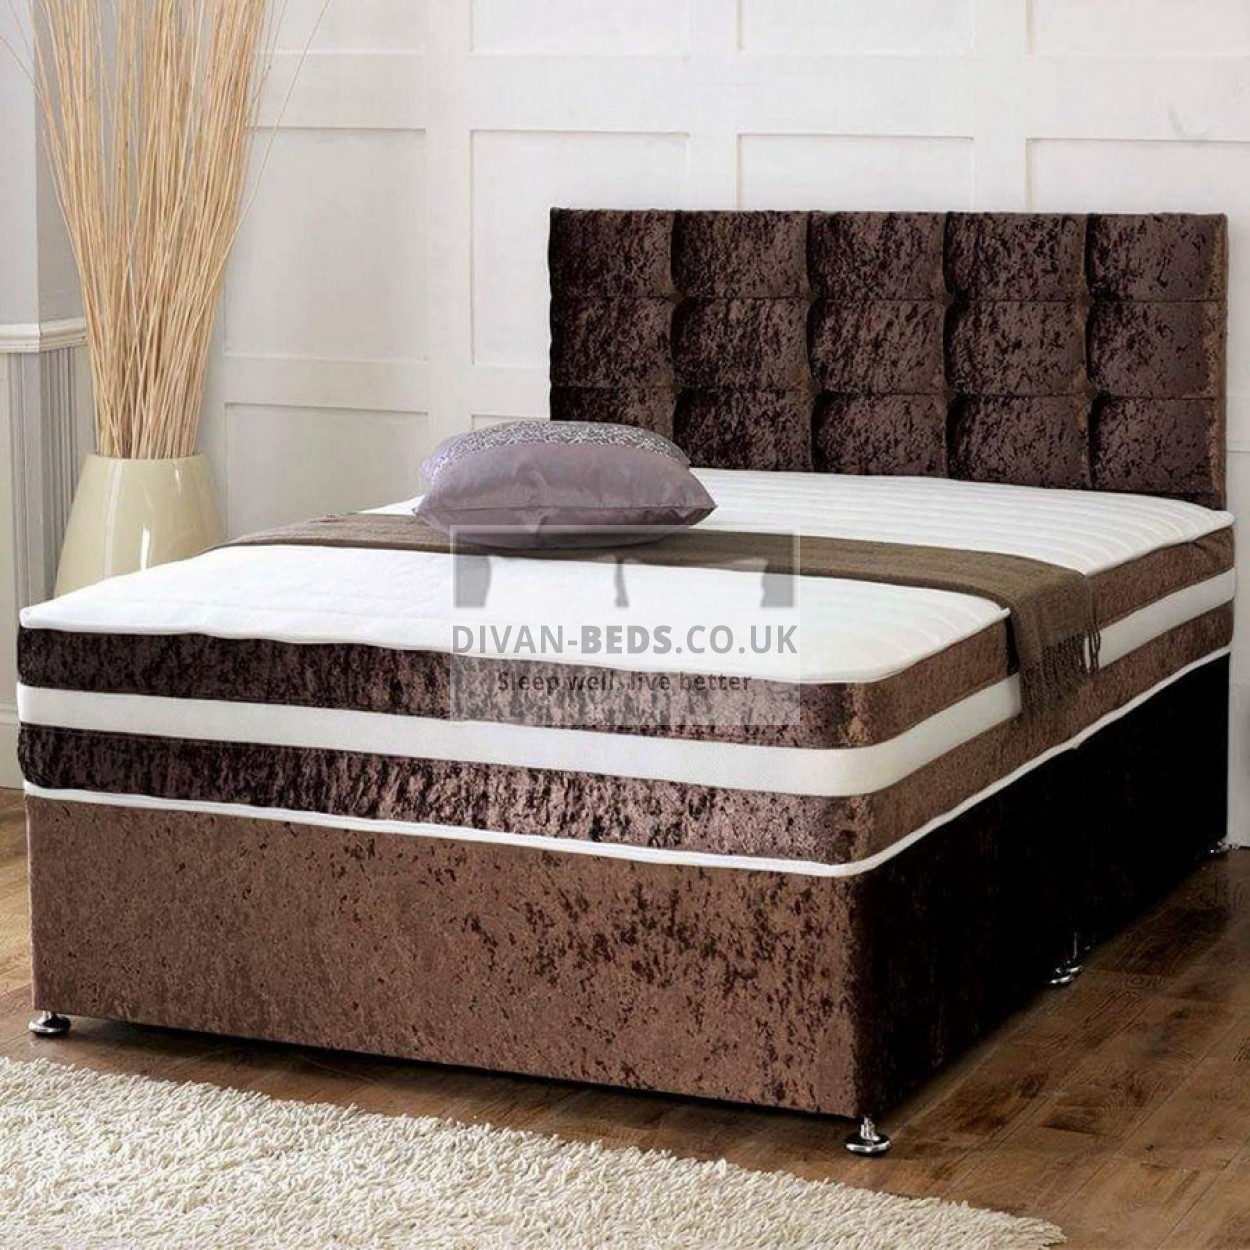 Divan Bed And Mattress Deals Brown Crushed Velvet Divan Set With Matching Fabric Headboard And